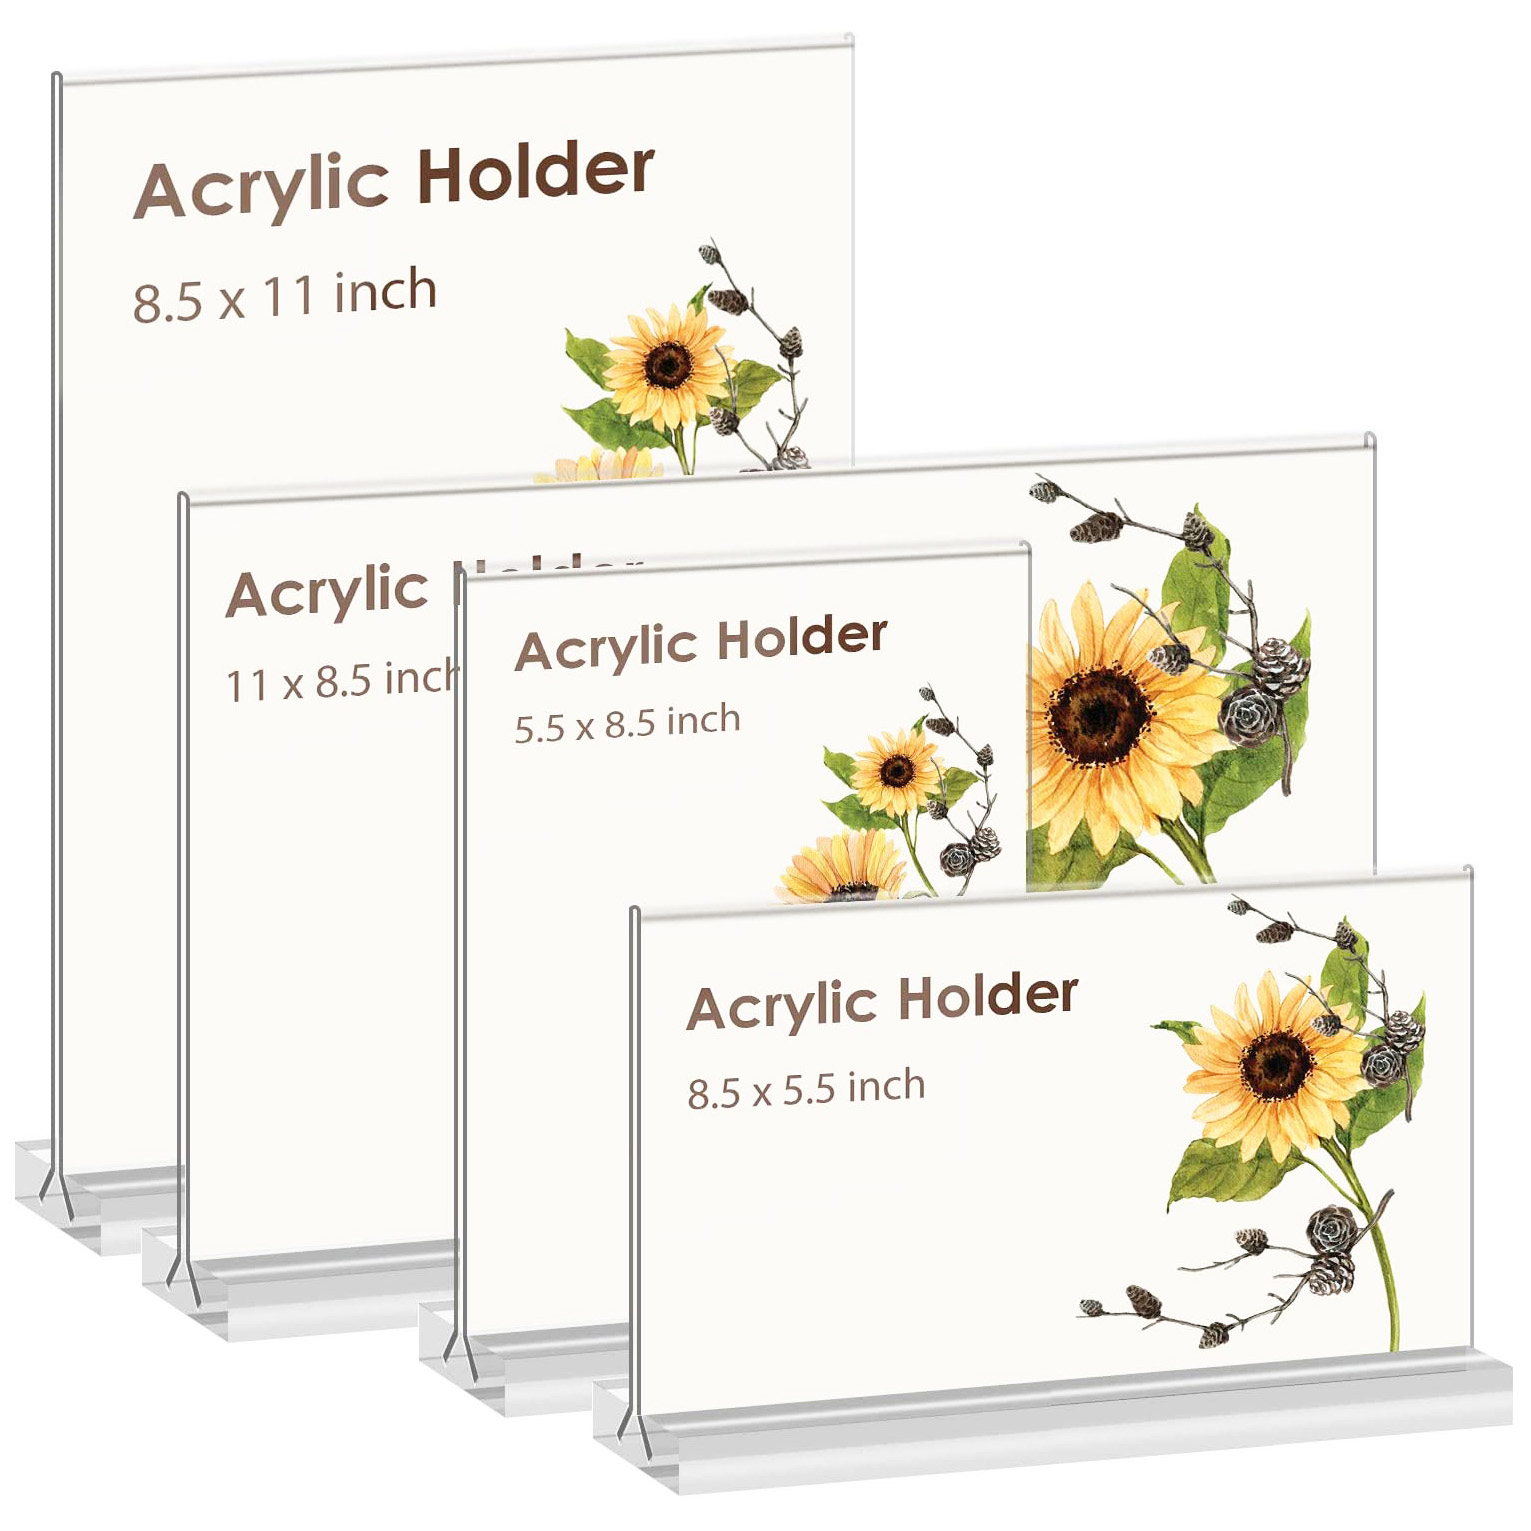 Double-Sided Acrylic Sign Holder For Stores